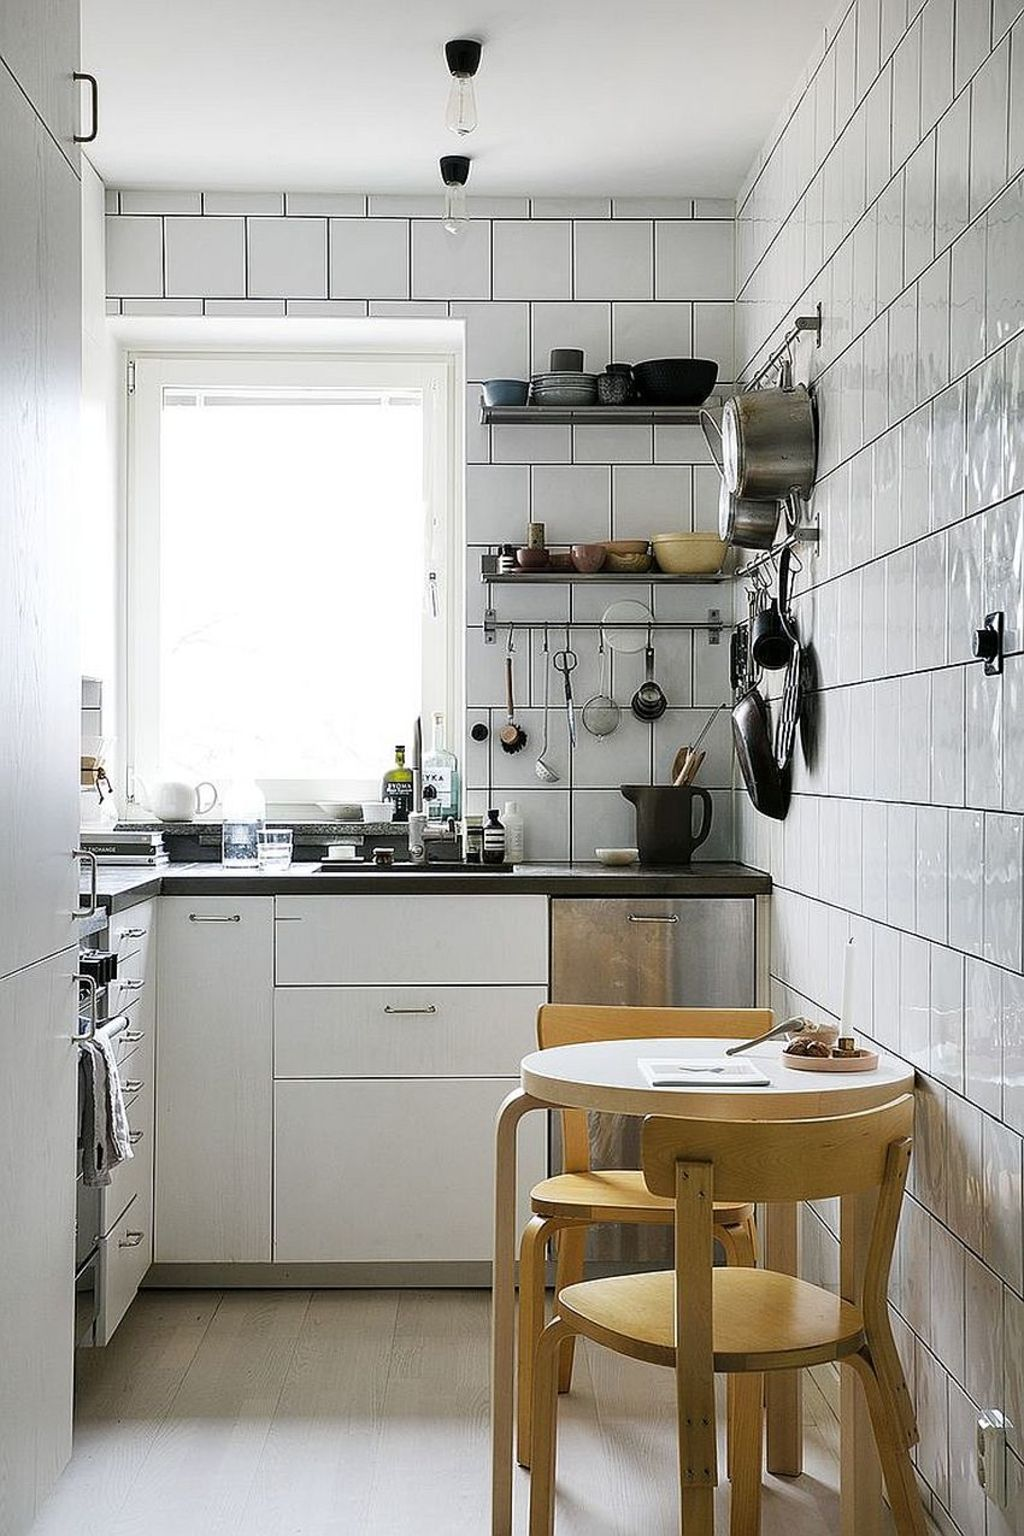 Kitchen Layout Design Tool: Pin By Little Princess On Kitshen Tools And Essentials